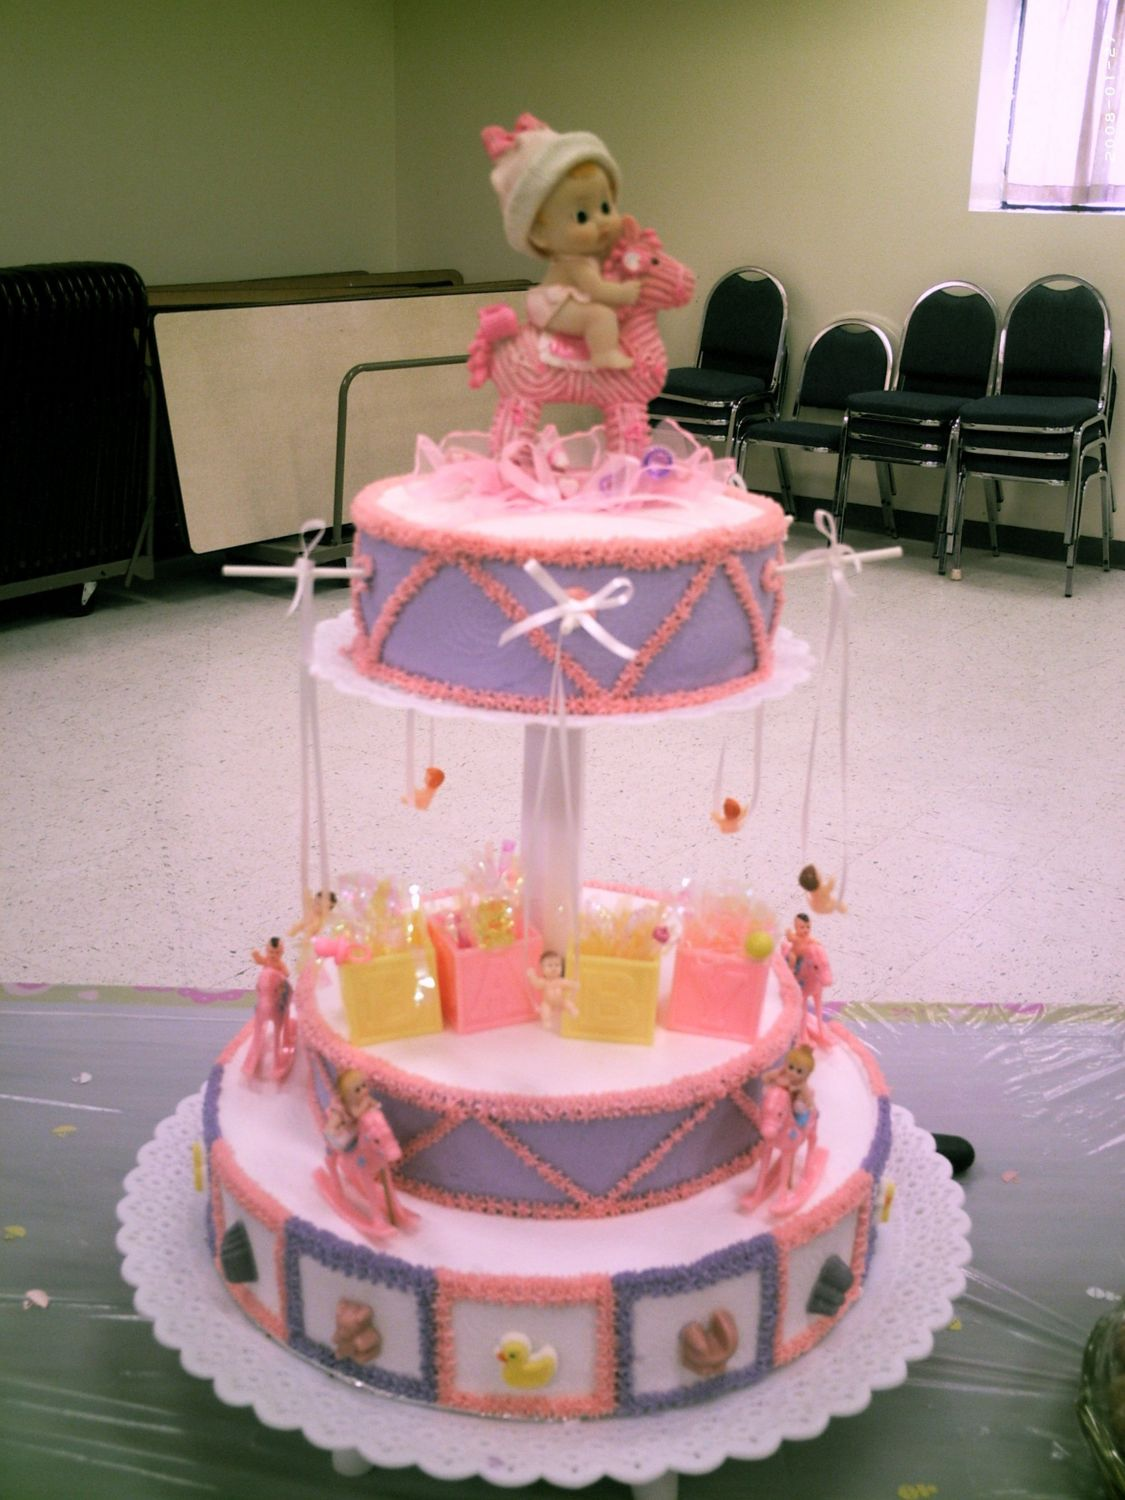 3 tier baby shower cake. Top layer has babies swinging, middle layer is setting on top of the bottom layer. Bottom layer has rocking horses with babies rocking and decorated with baby candy molds set around on each block square. I made this cake for my niece.